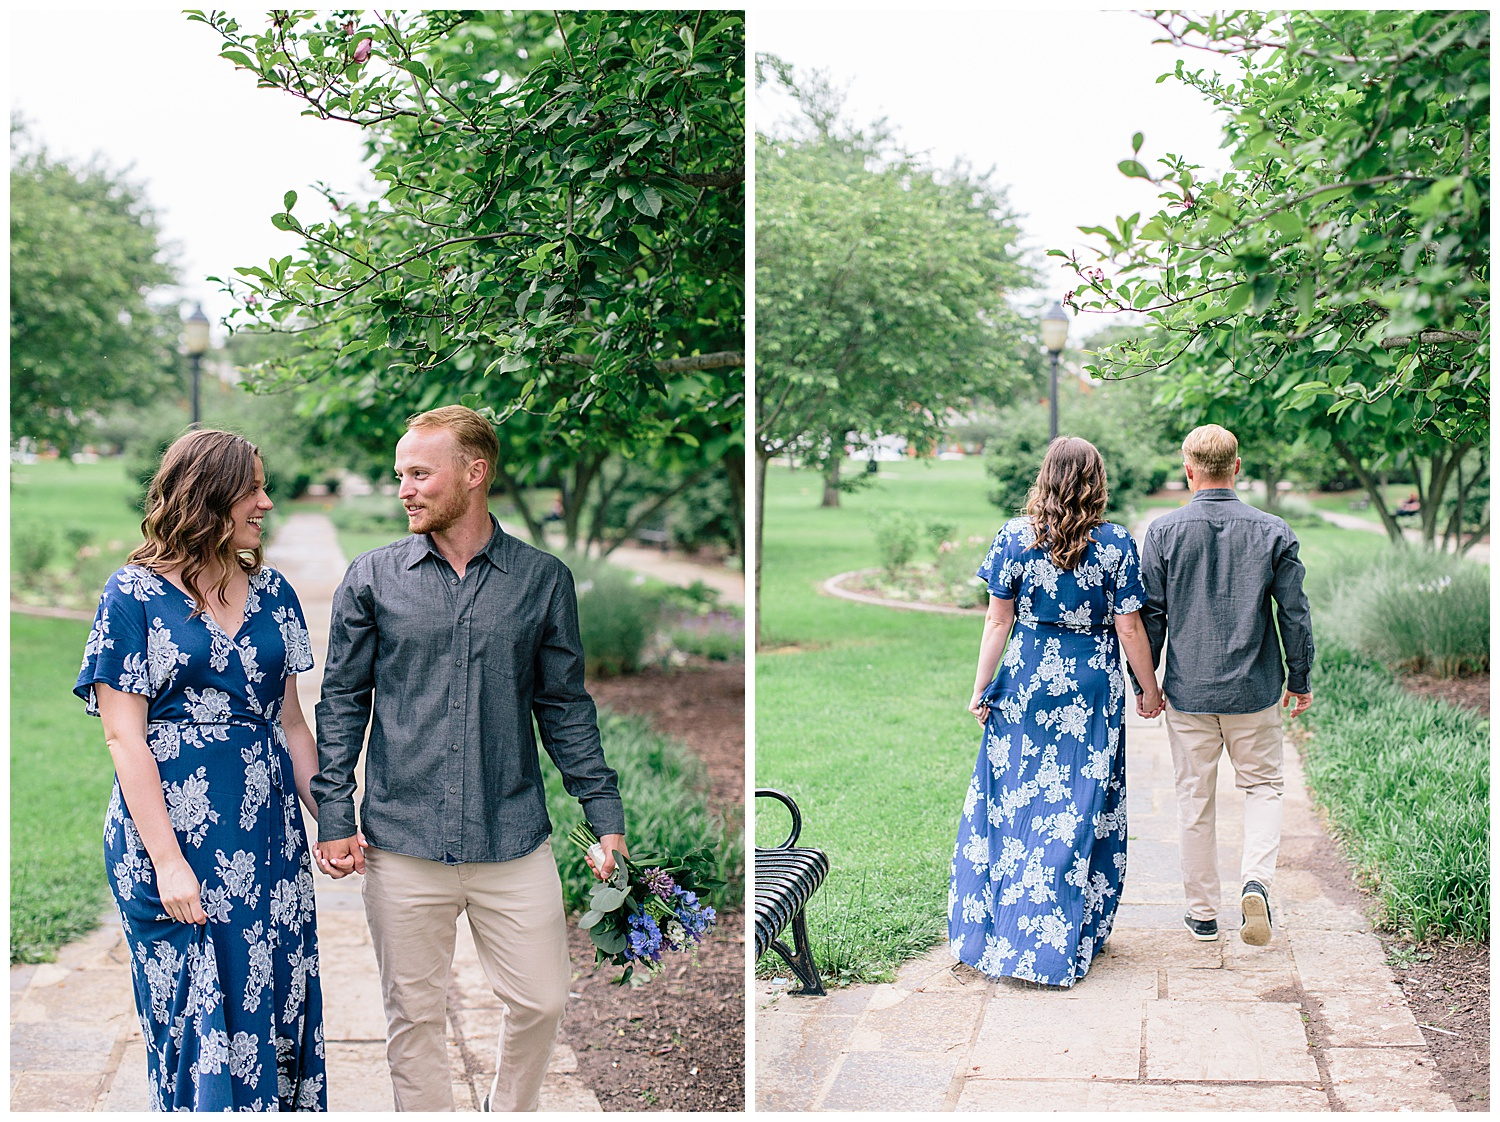 emily-belson-photography-frederick-md-engagement-18.jpg